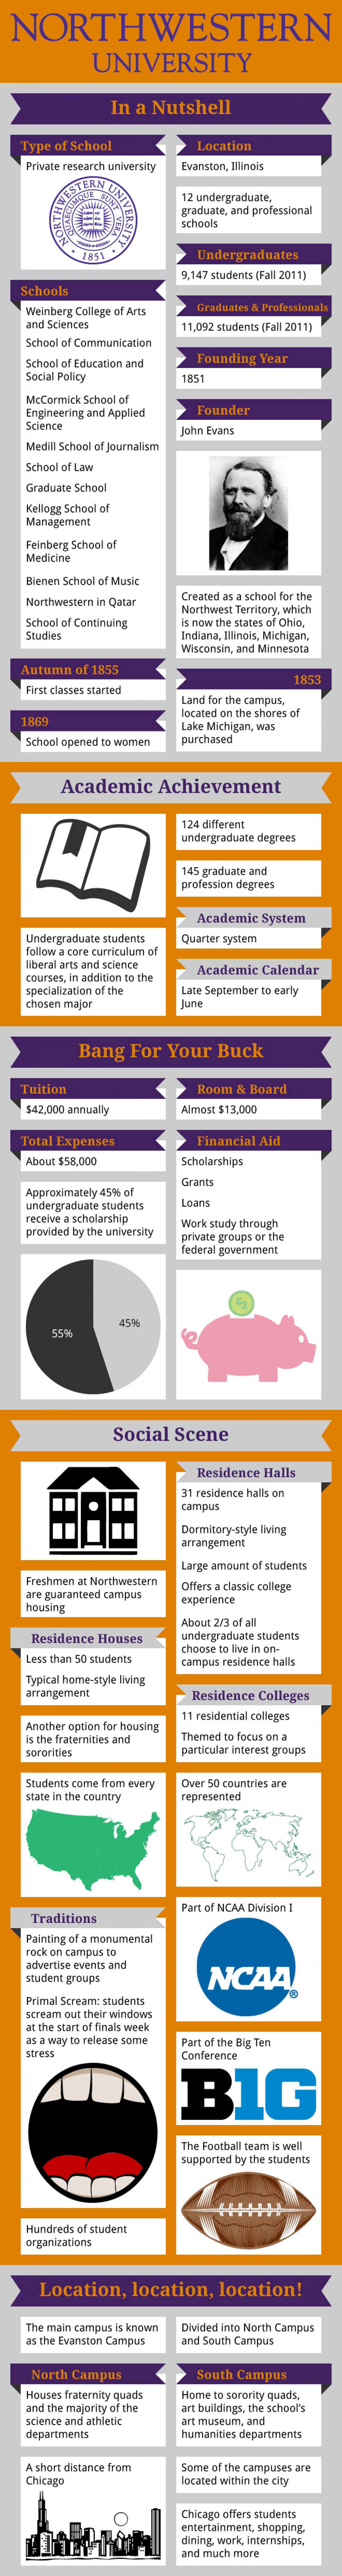 Northwestern University Infographic Infographic